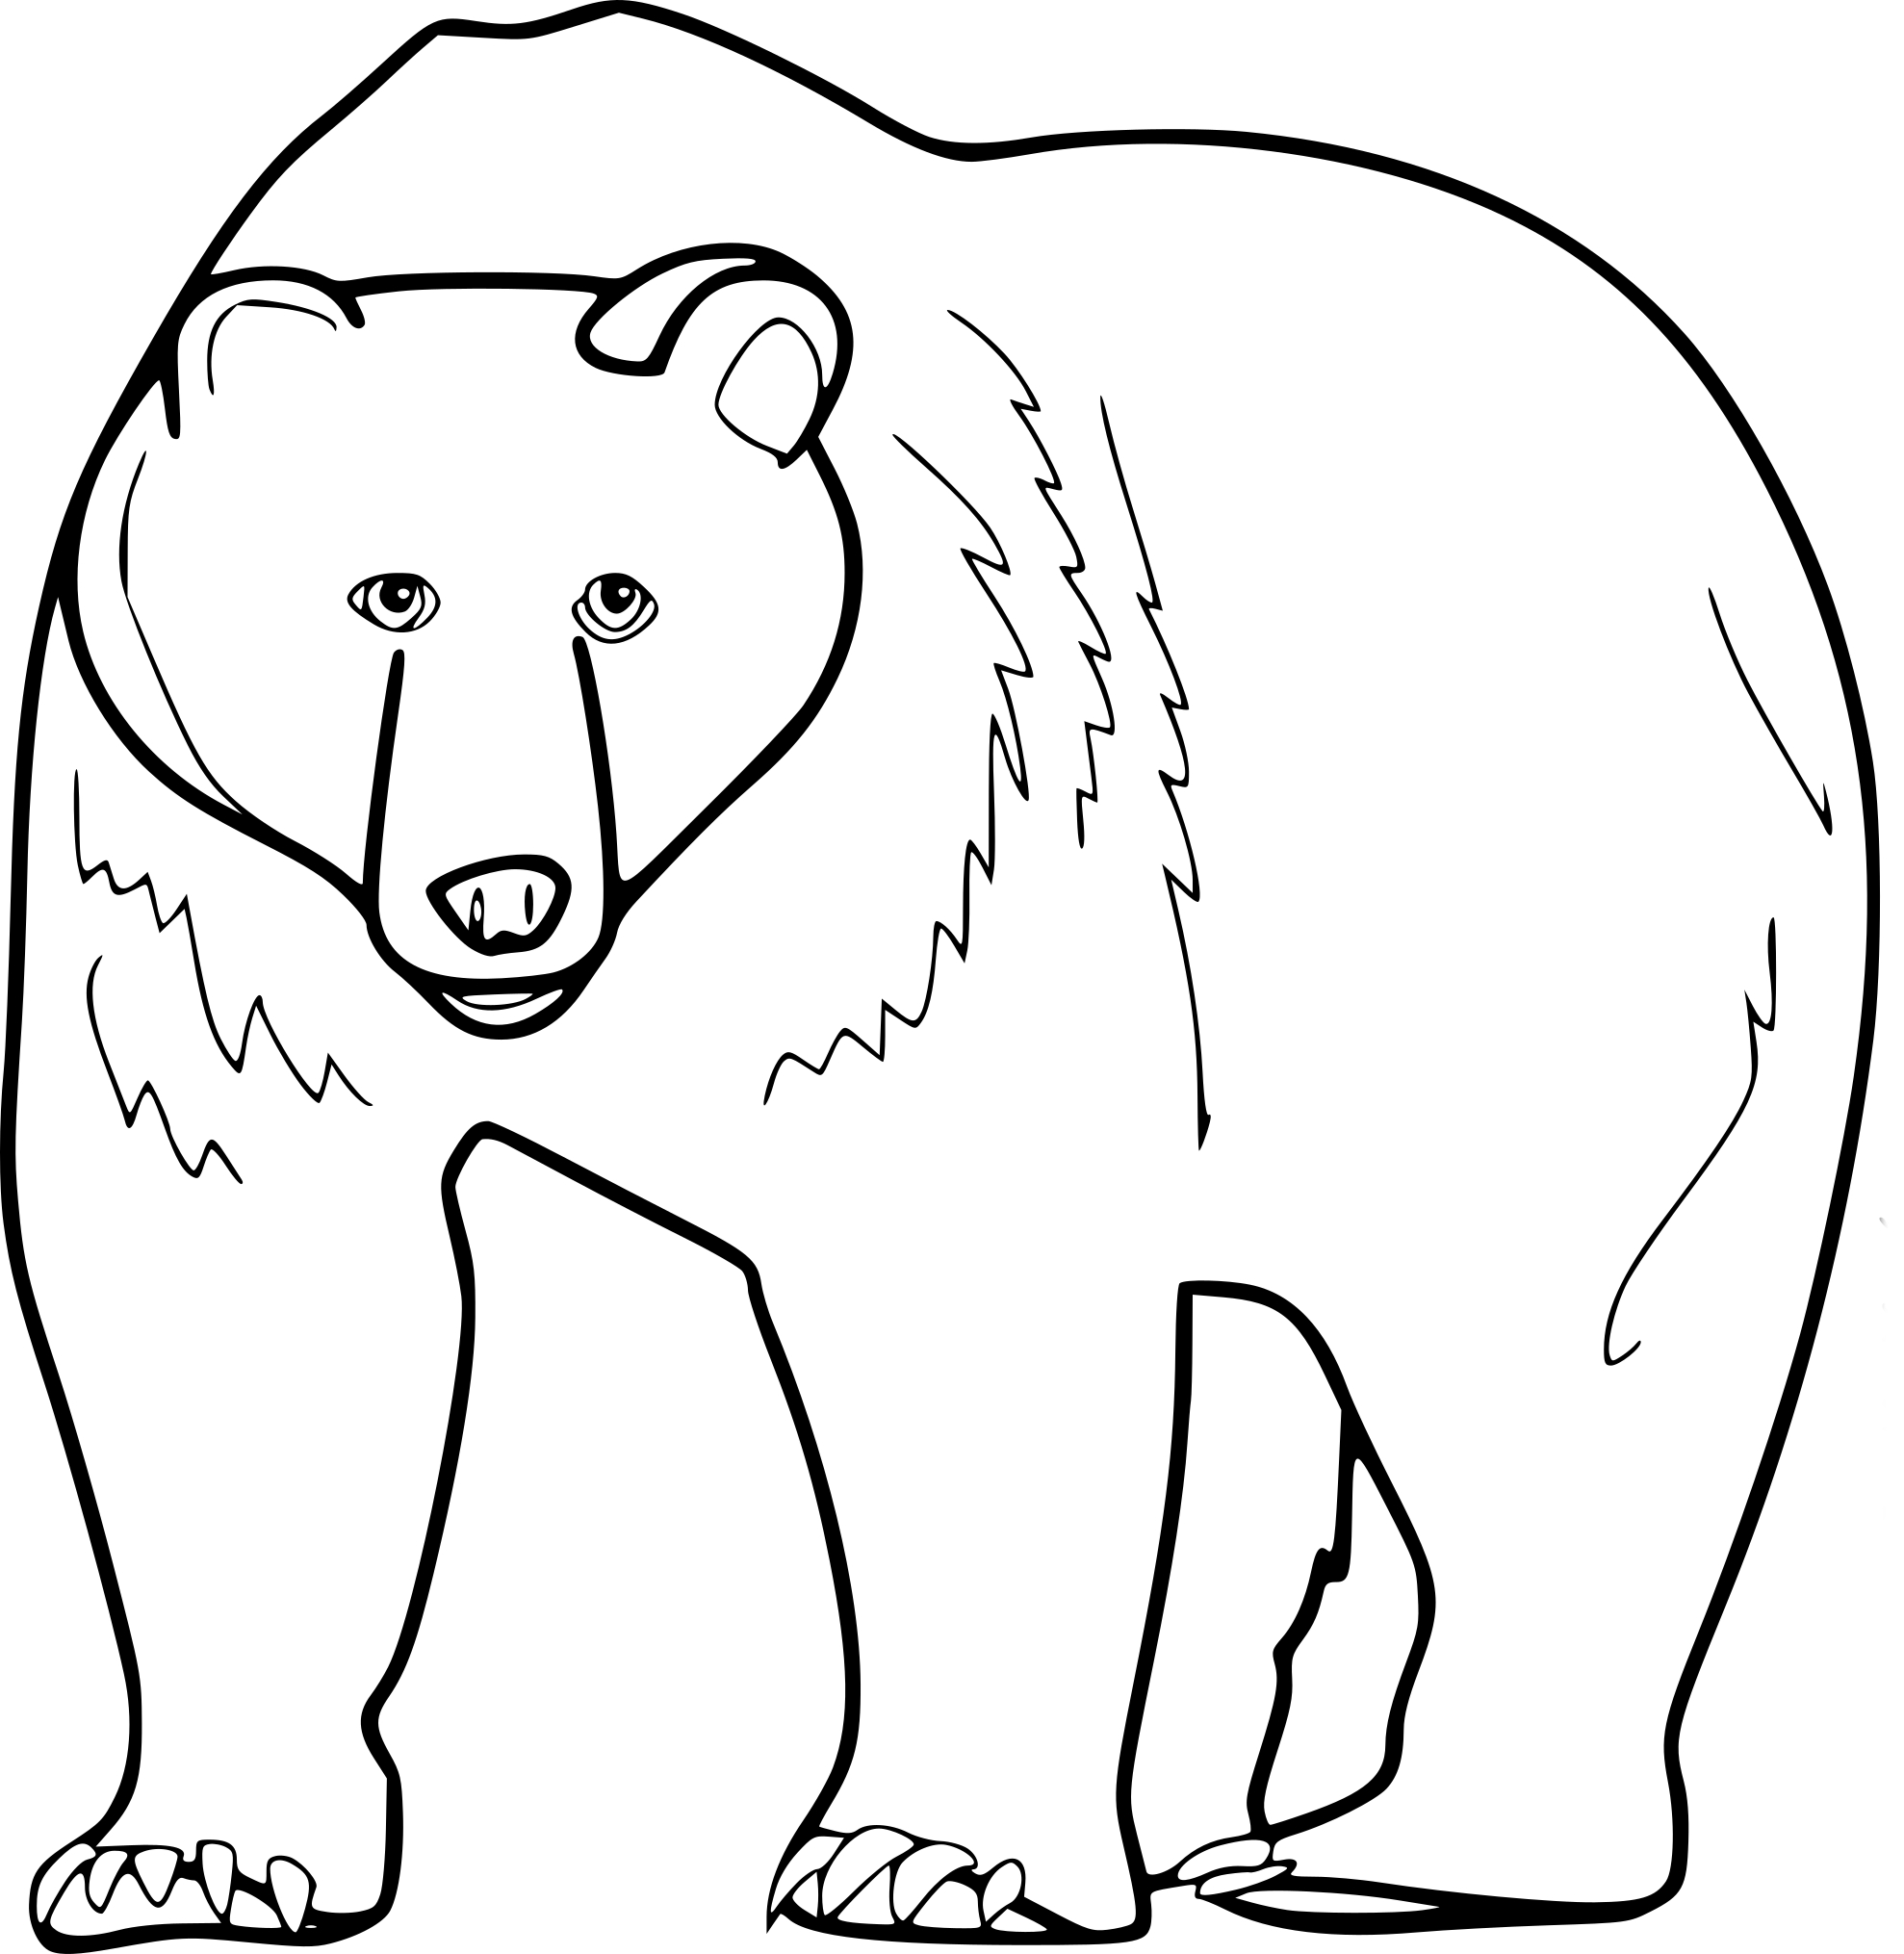 Grizzly dessin